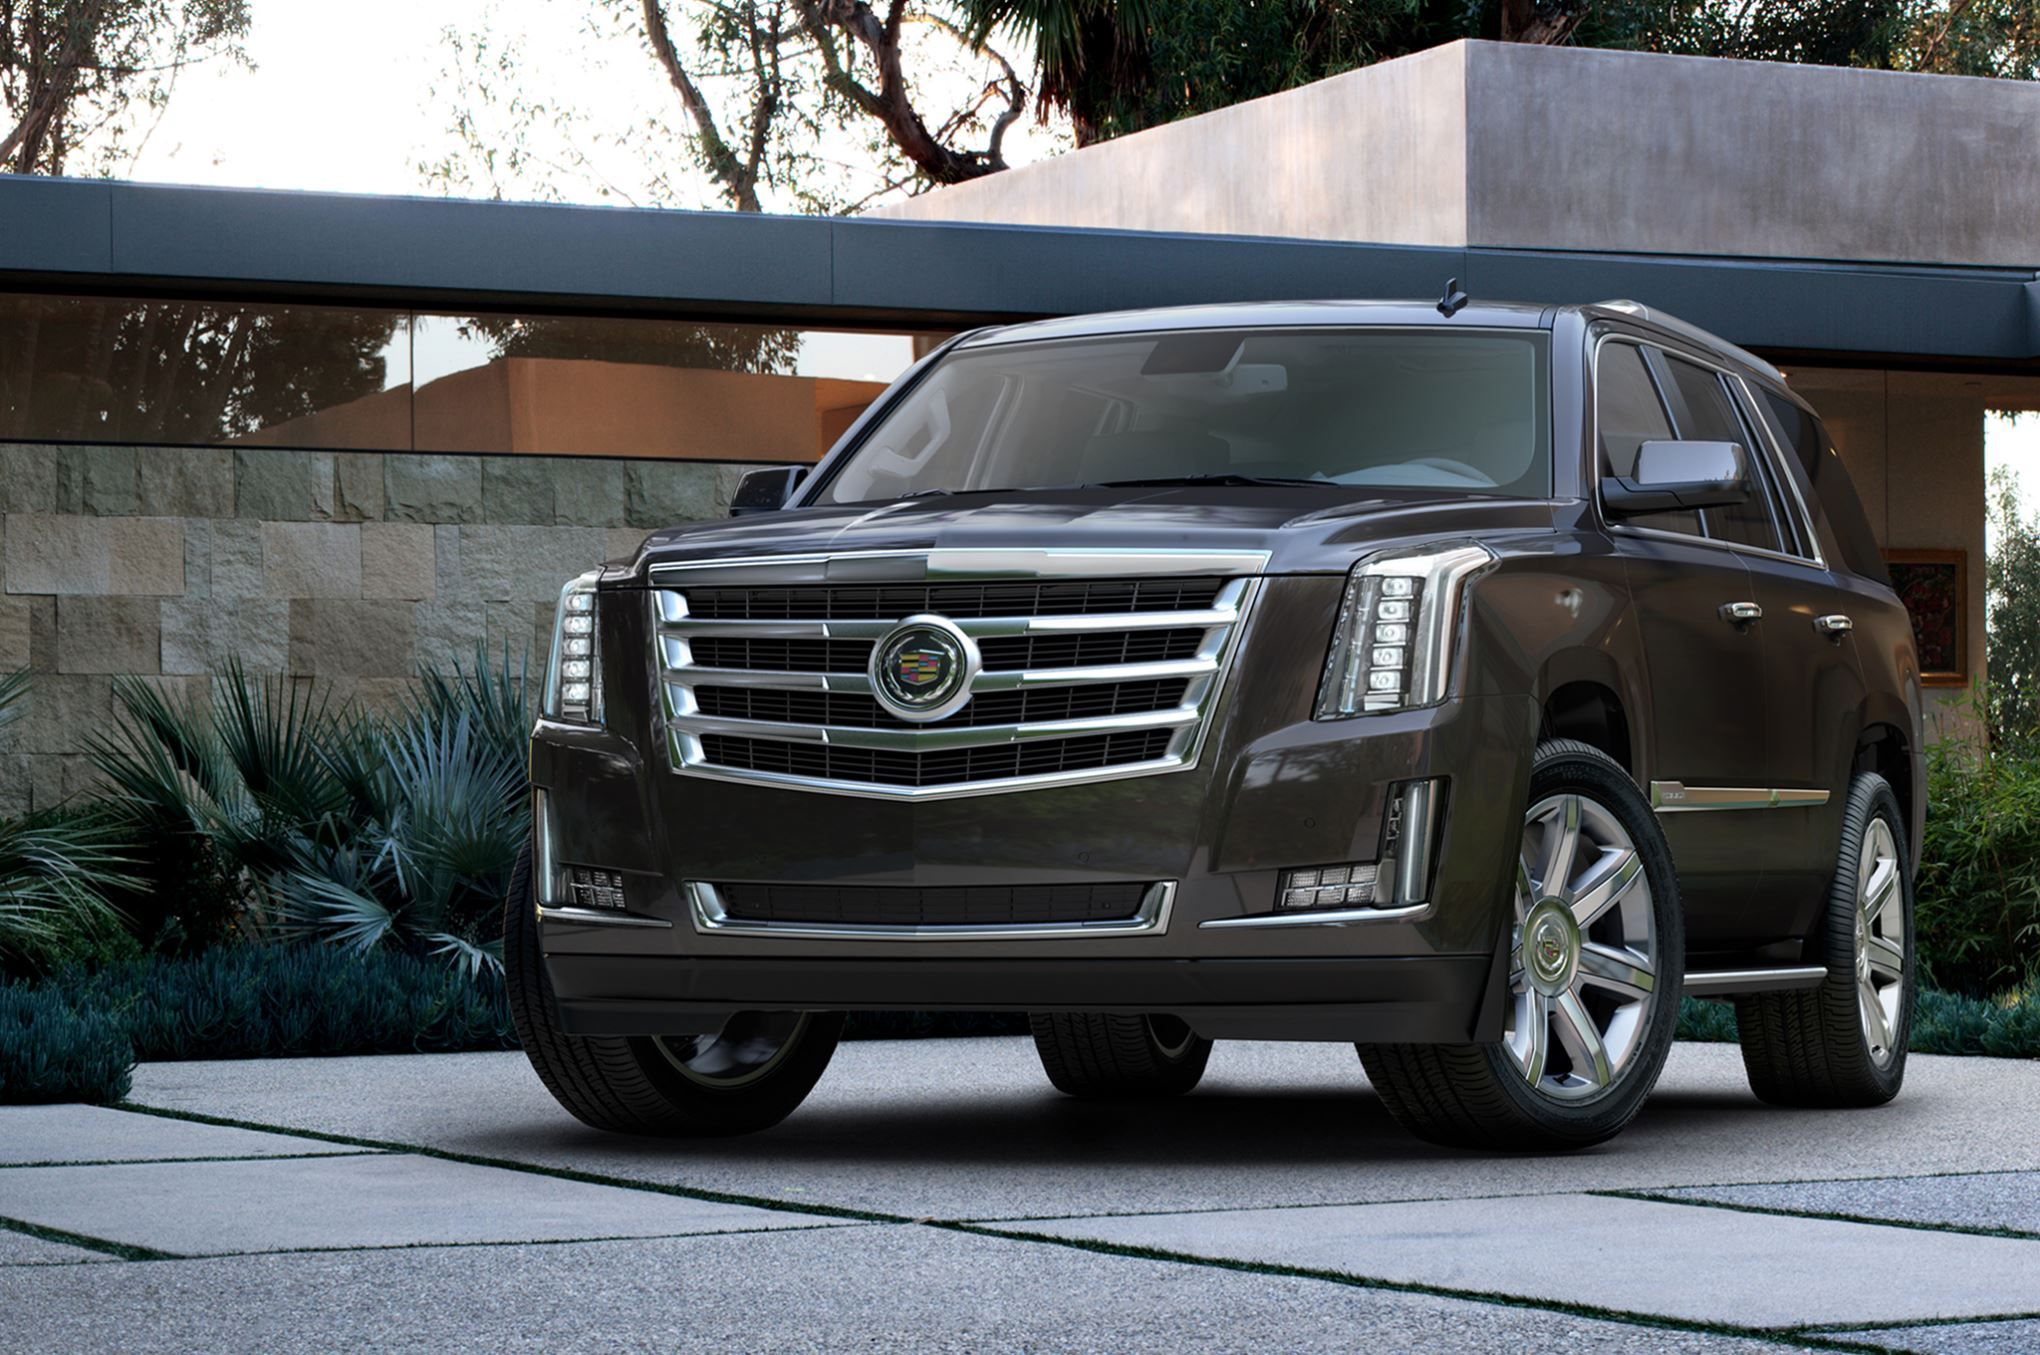 2015 Cadillac Escalade - Provided by TruckTrend